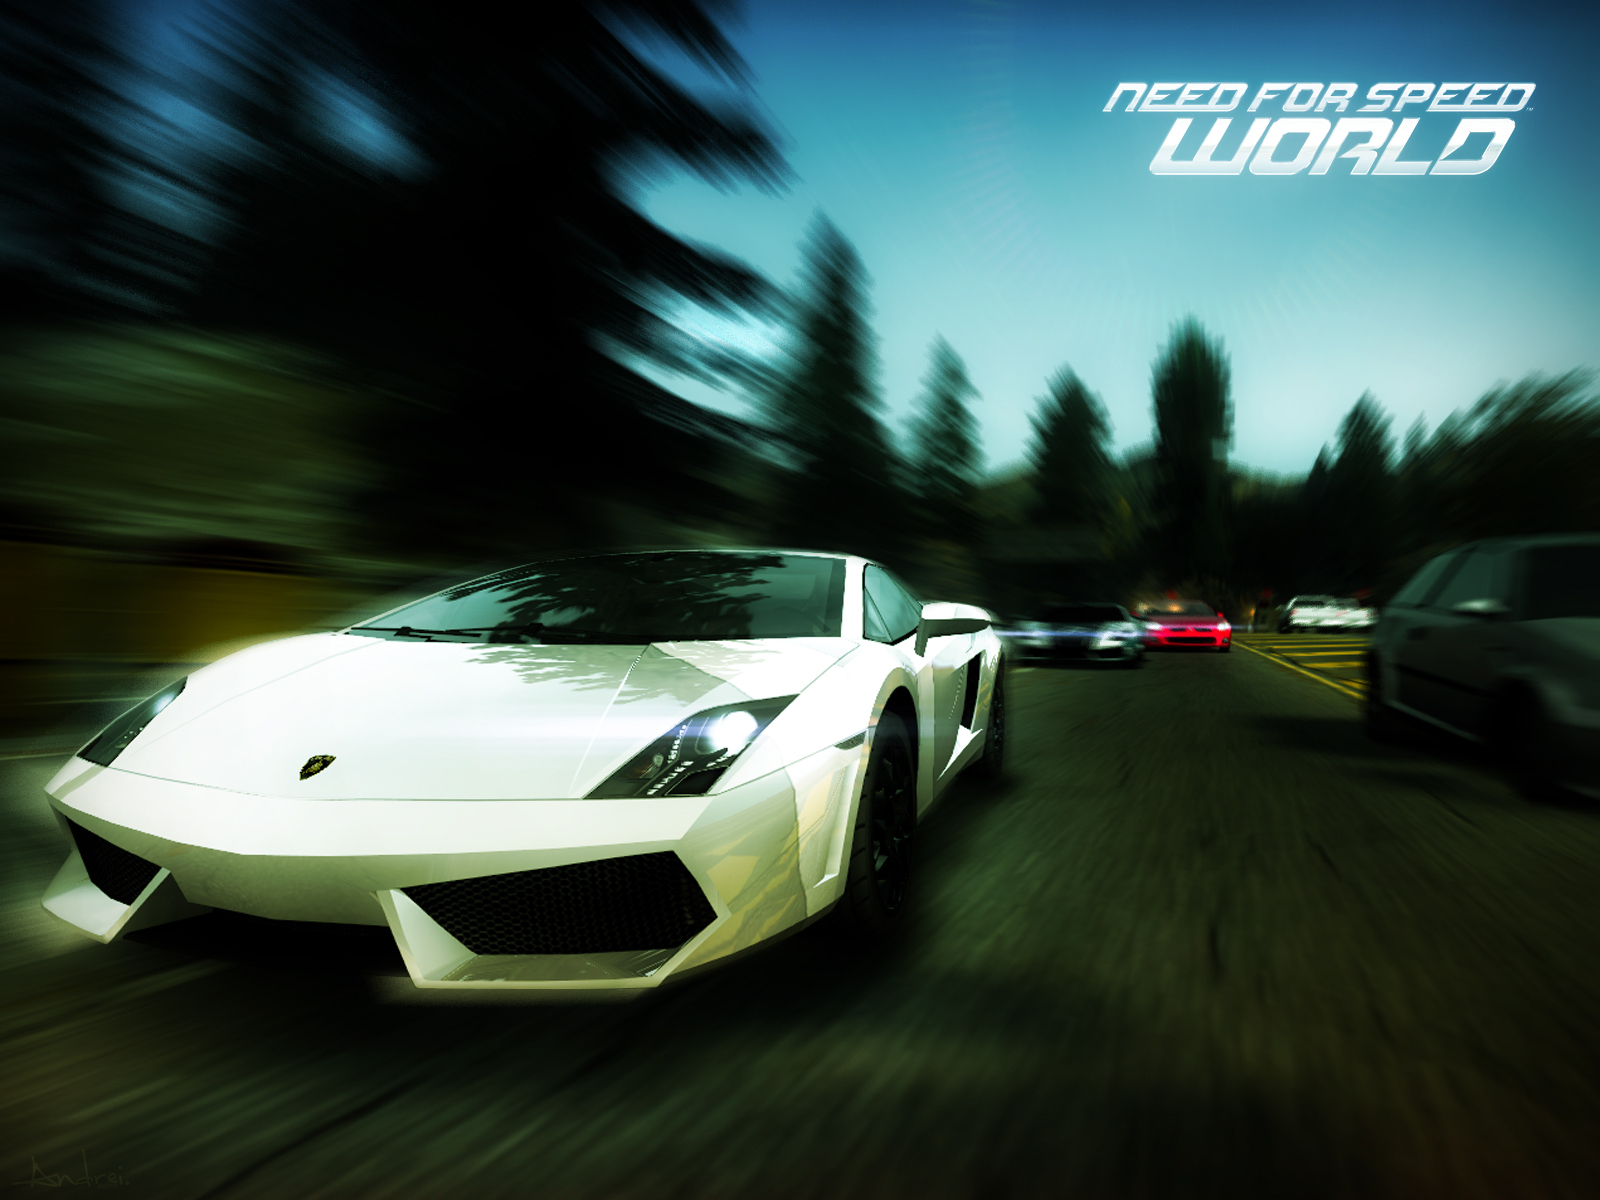 Need For Speed World Wallpaper 6 Wallpapersbq